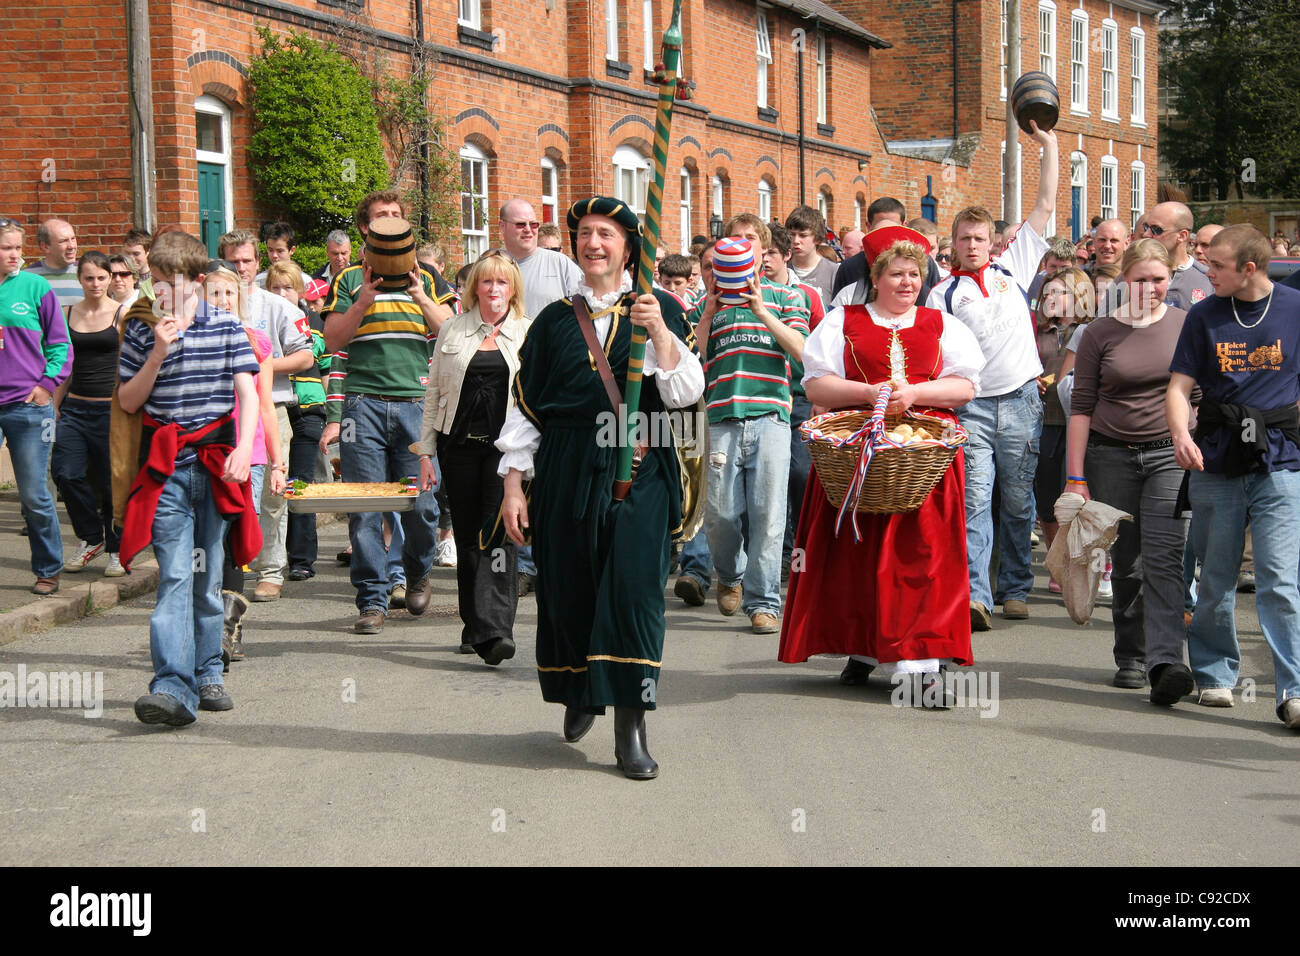 The annual Bottle Kicking and Hare Pie Scramble, held on Easter Monday in Hallaton, Leicestershire, England. - Stock Image